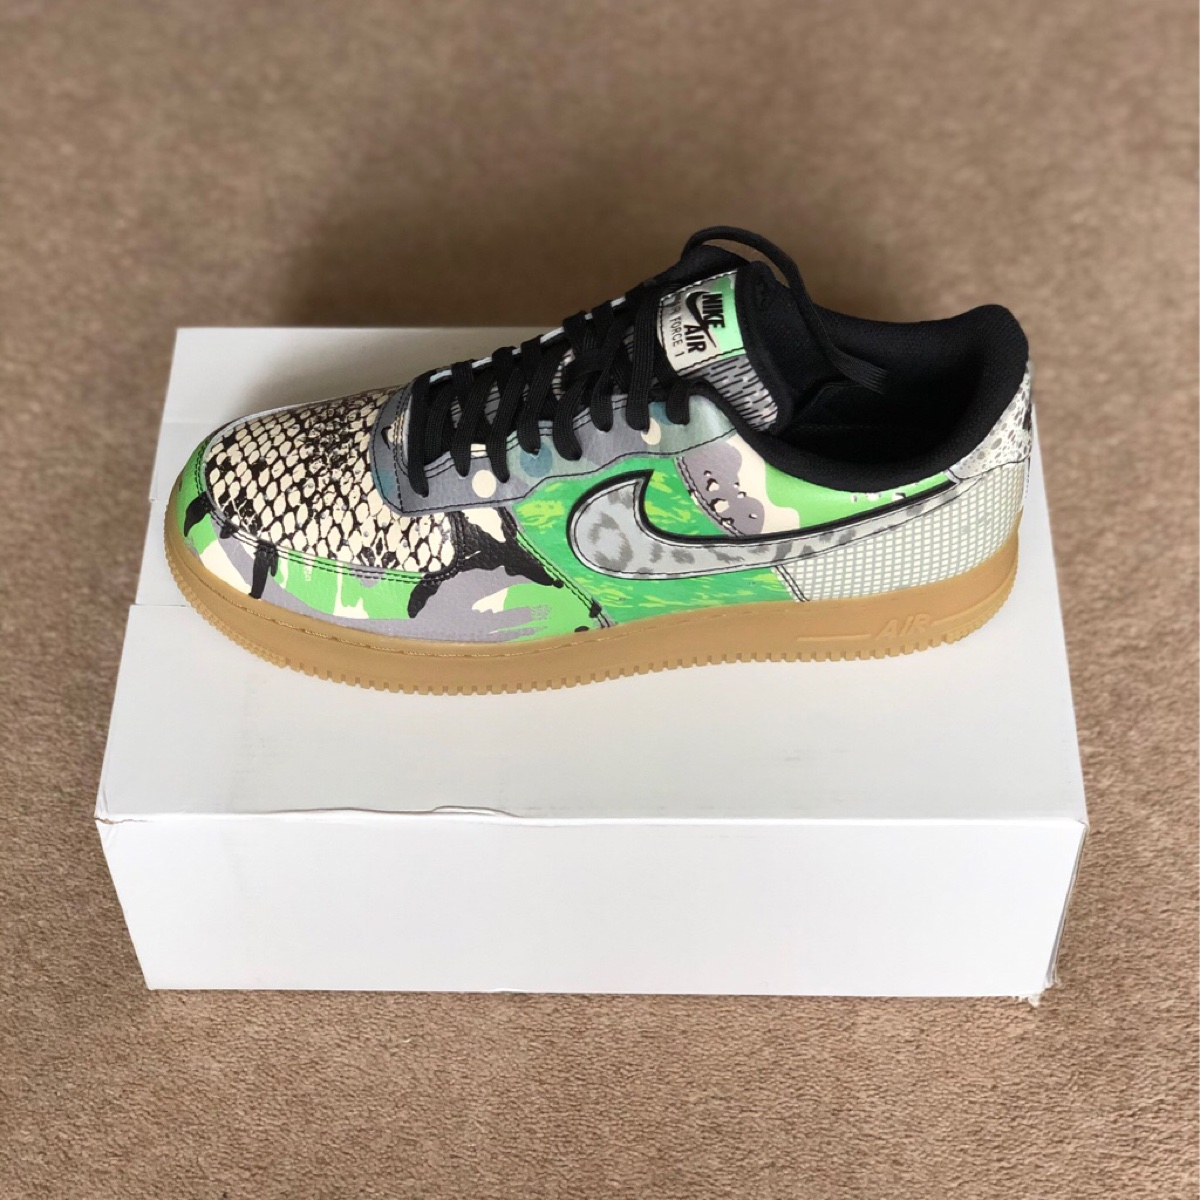 Nike Air Force 1 city of dreams Size US 11.5